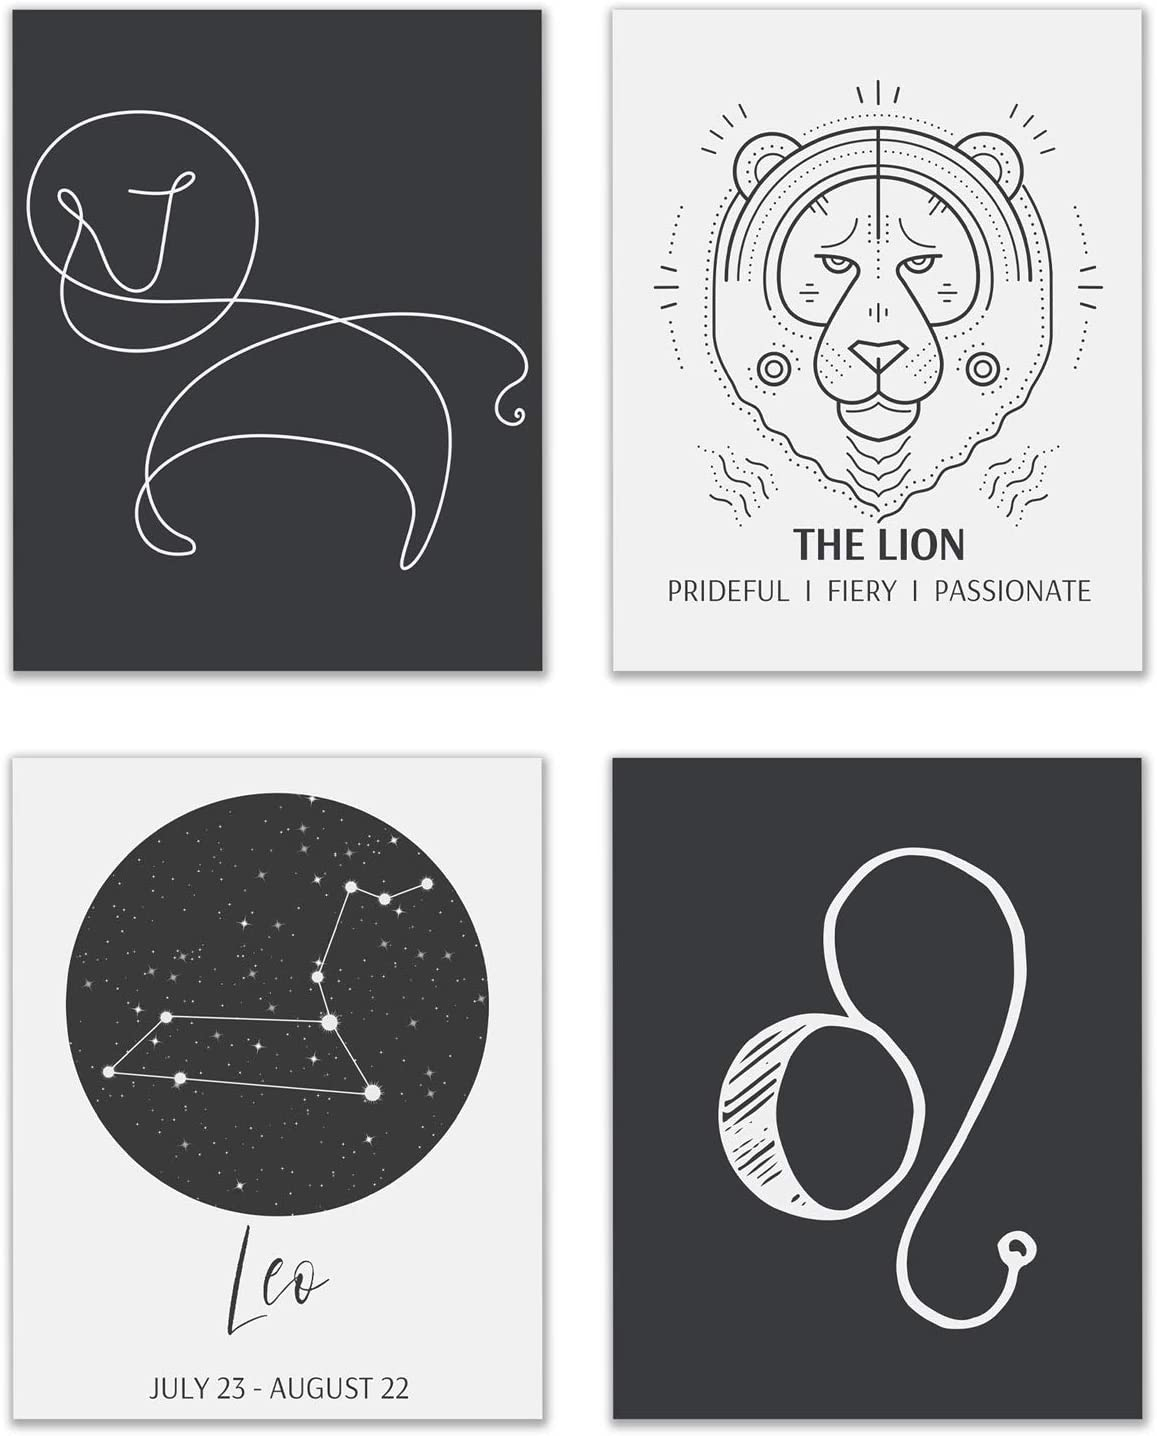 Leo Astrological Sign Prints - Set of 4 (8x10 Inches) Zodiac Constellation Horoscope Star Sign Four Elements Wall Art Decor - The Lion - Fire - Fixed - Sun